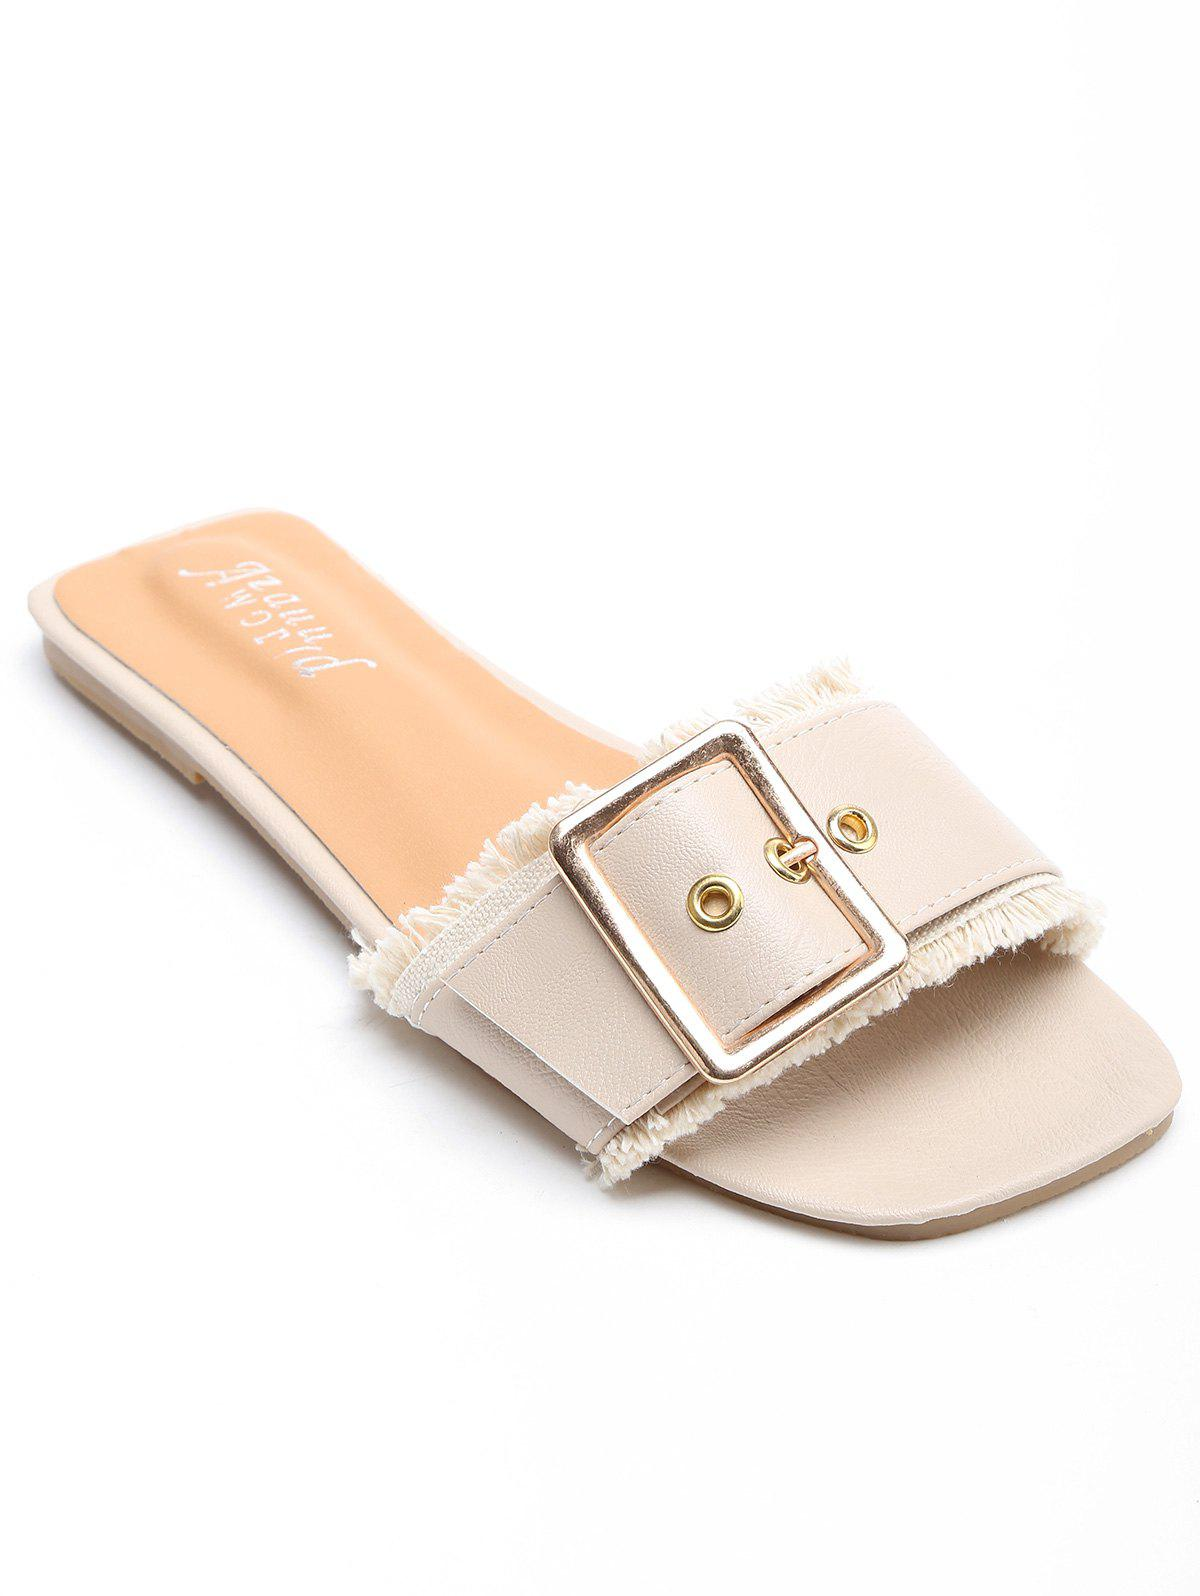 Chic Holiday Flat Heel Slide Sandals - BEIGE 38